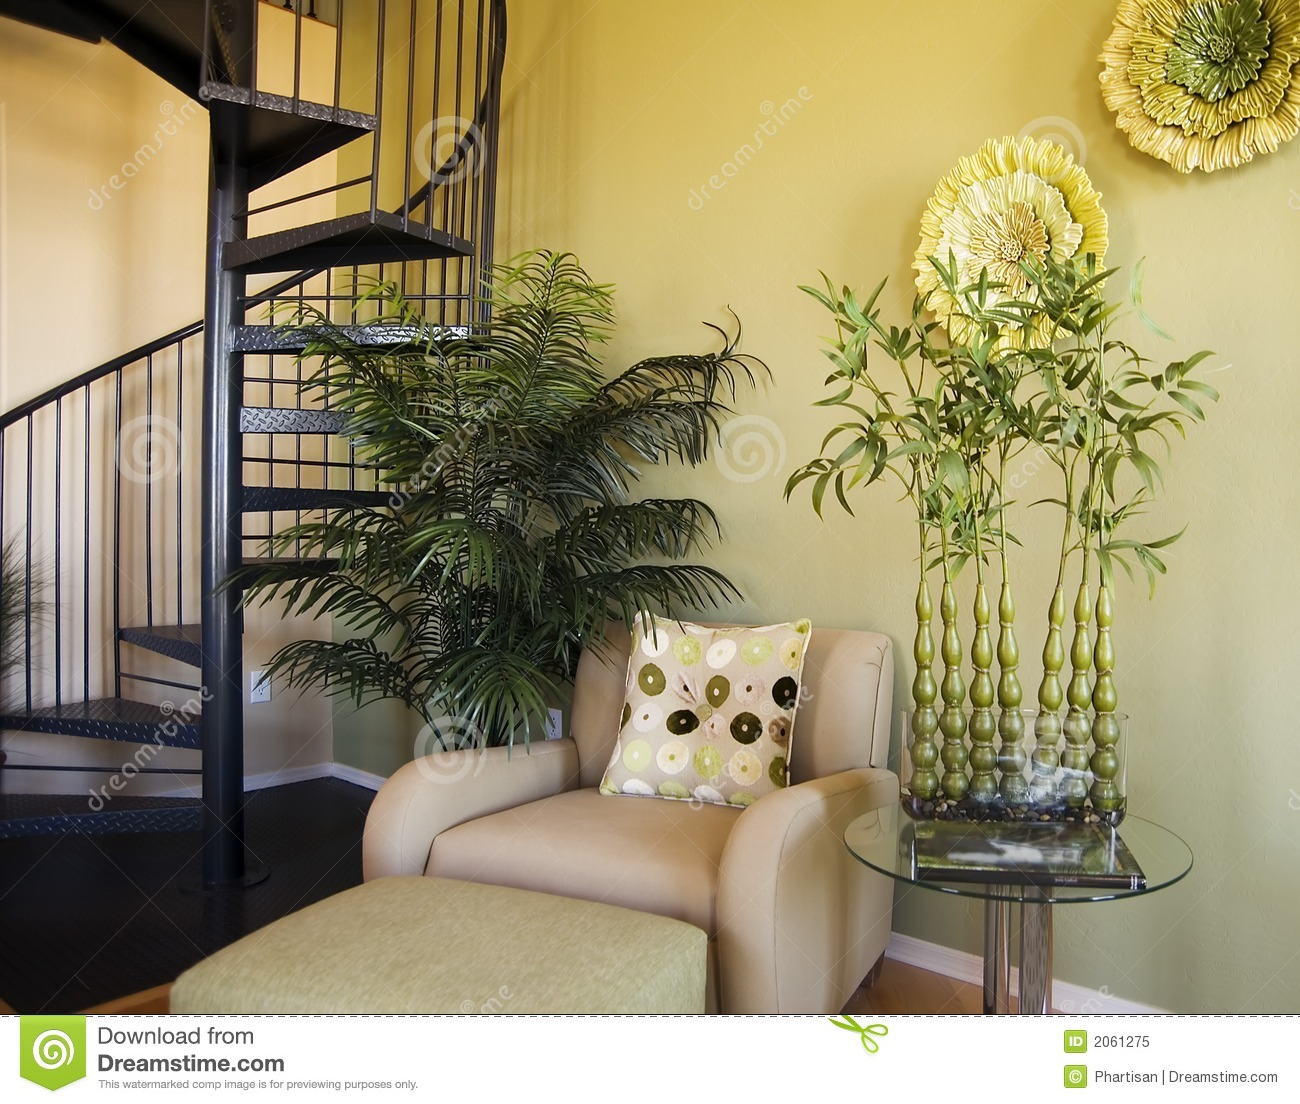 model home interior design royalty free stock photo image 2061275